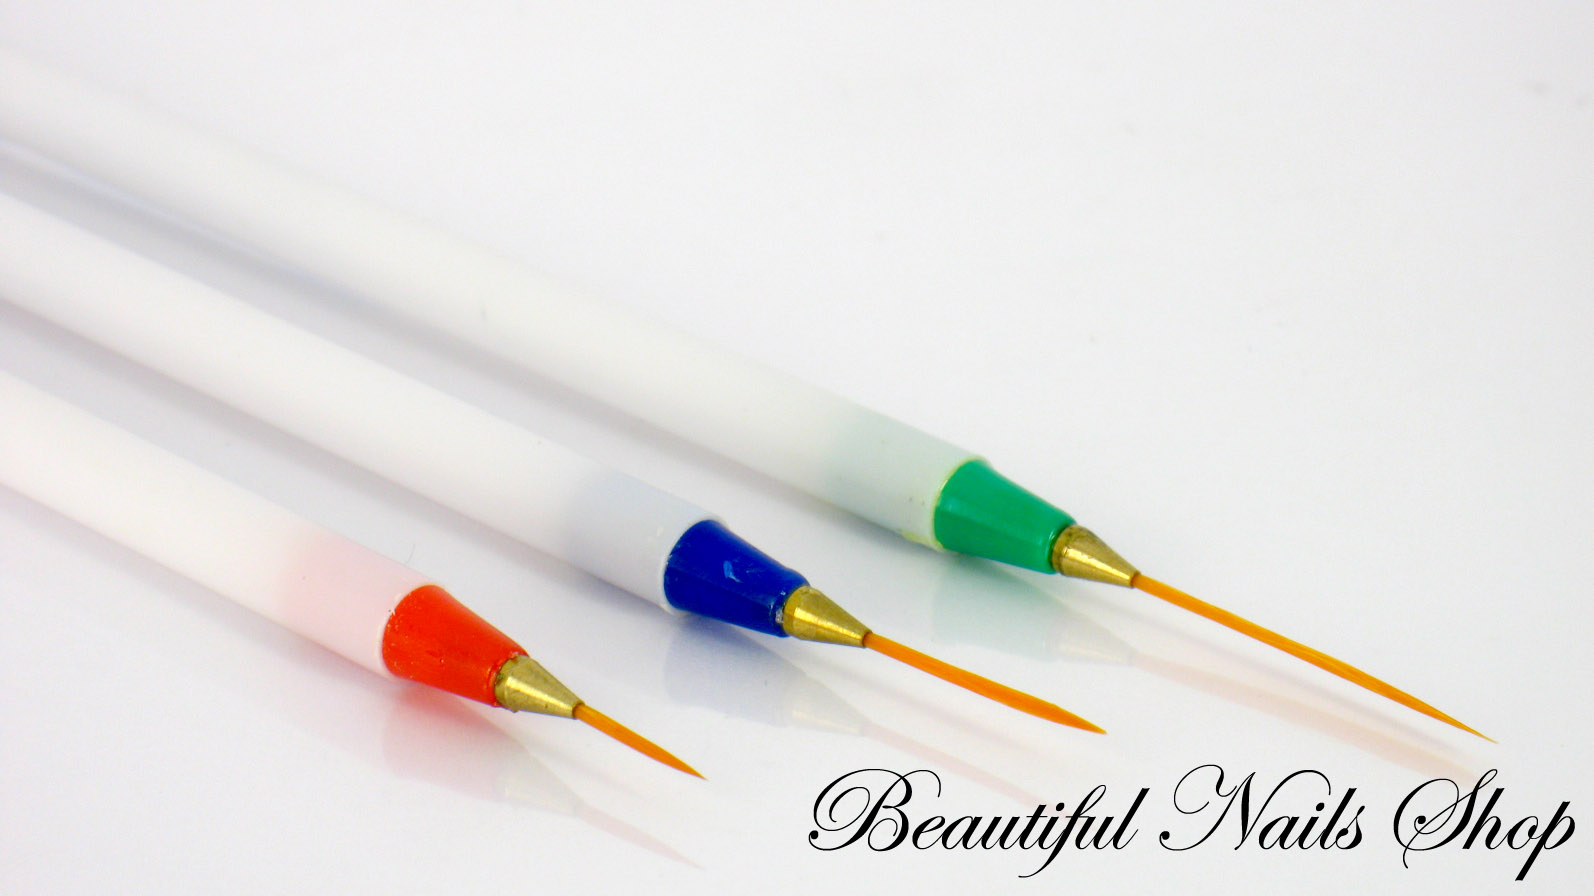 Nail Art Pen Brush Painting Tools Set Of 3